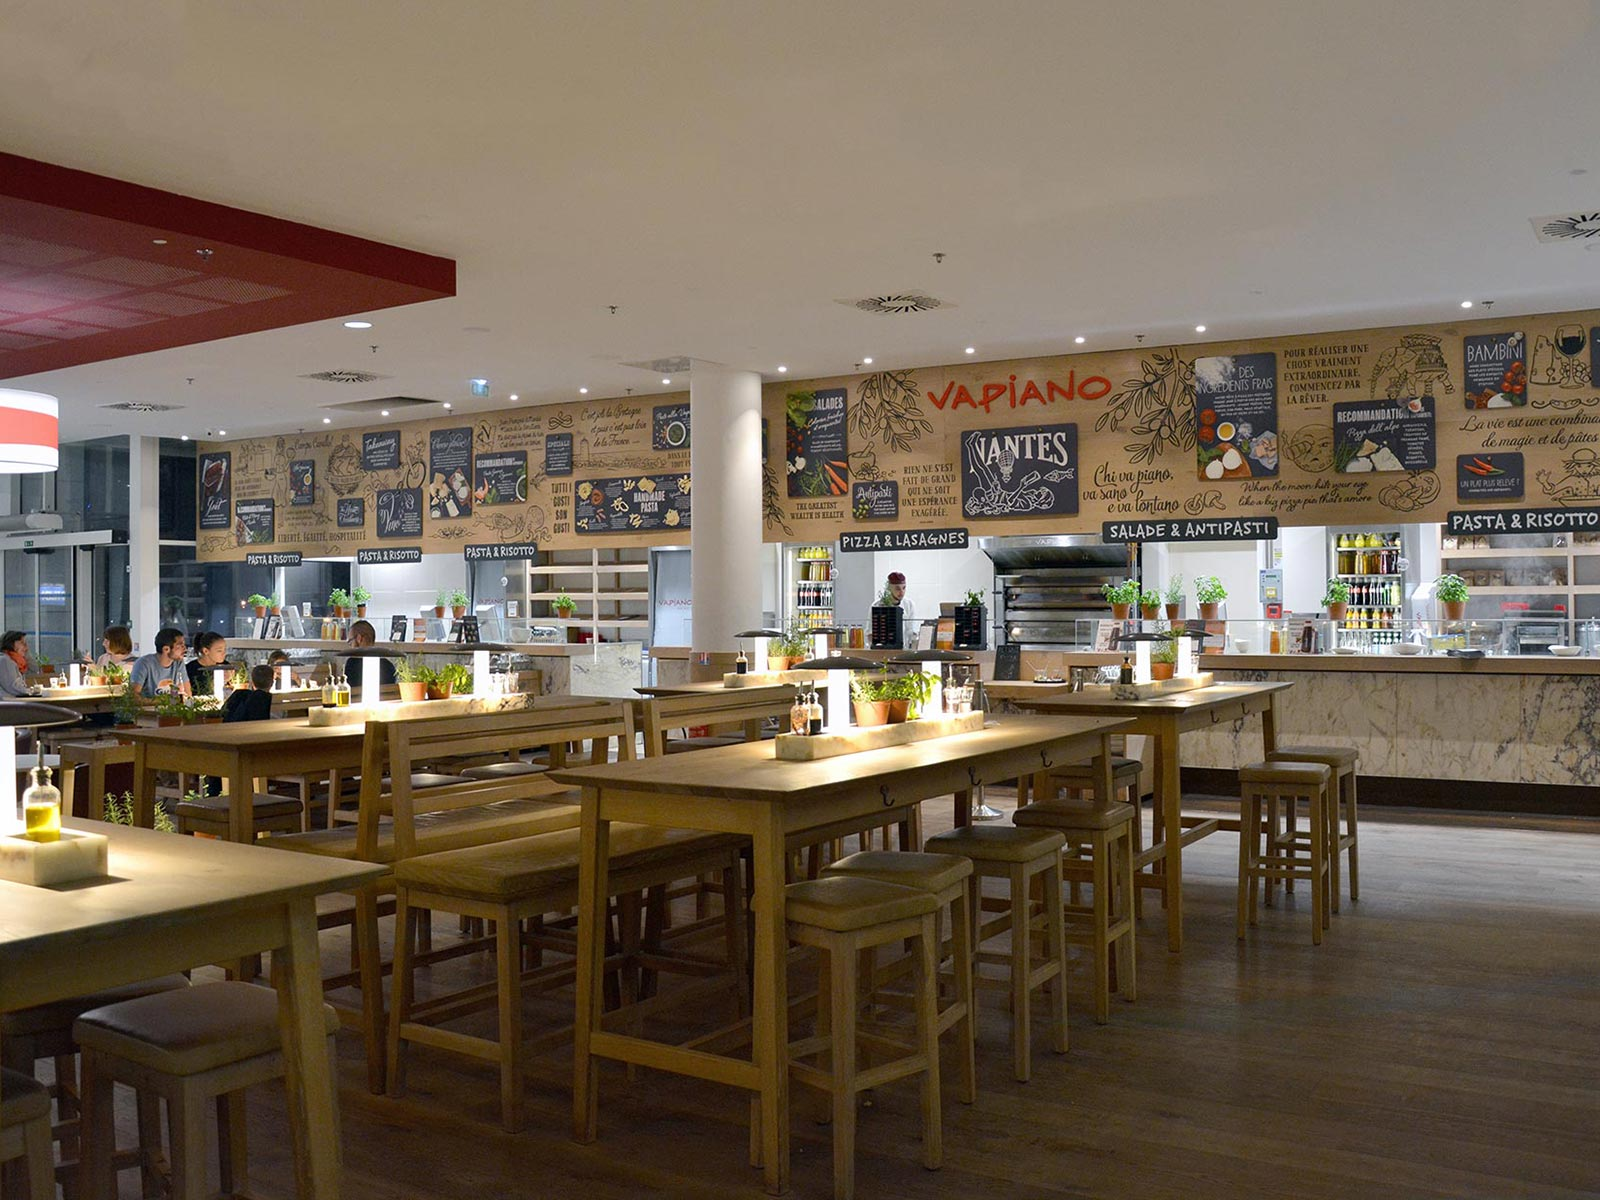 article de blog sur le restaurant Vapiano Nantes Atlantis